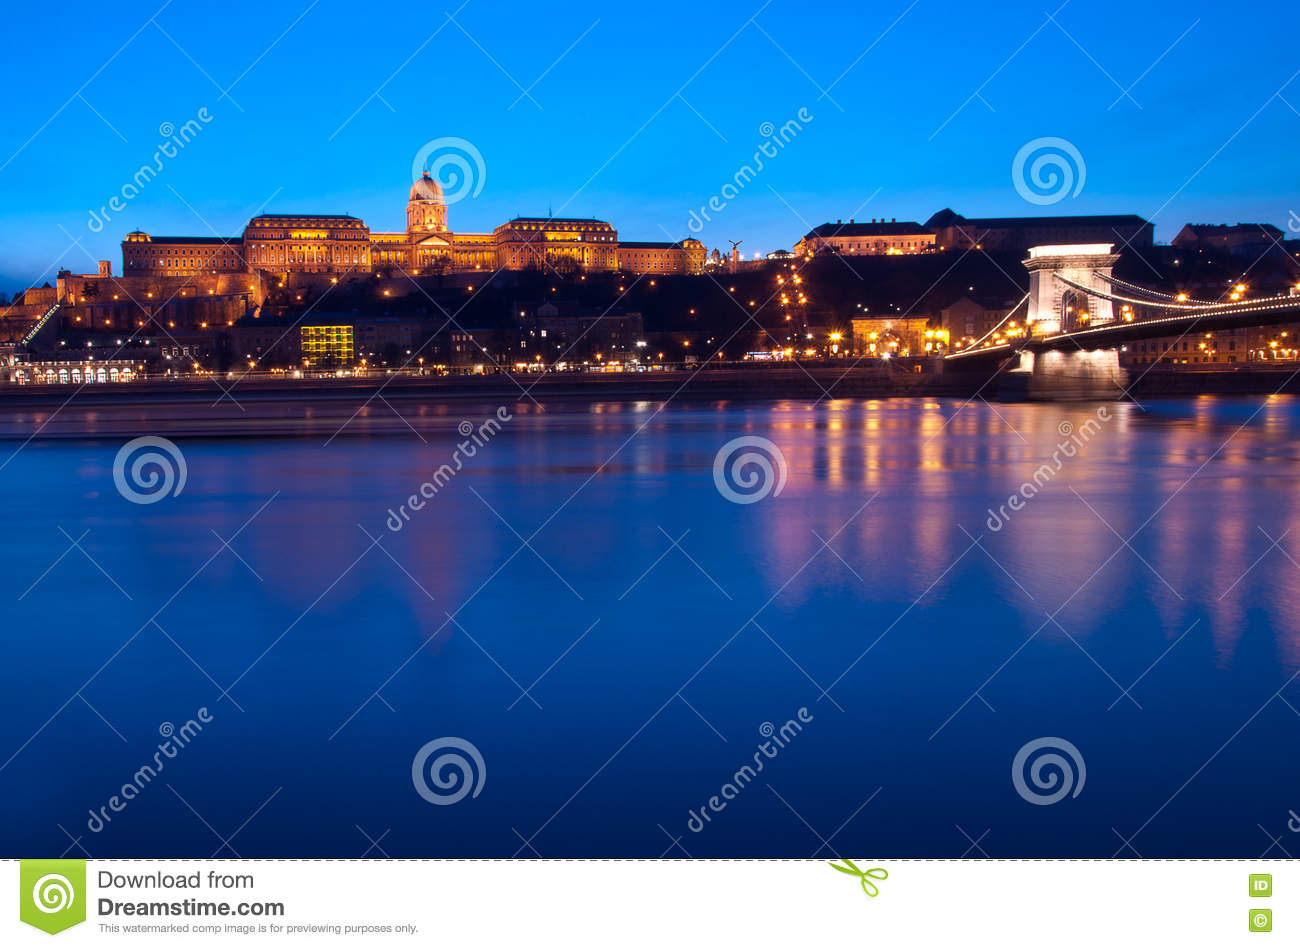 Blue Hour on the Blue Danube